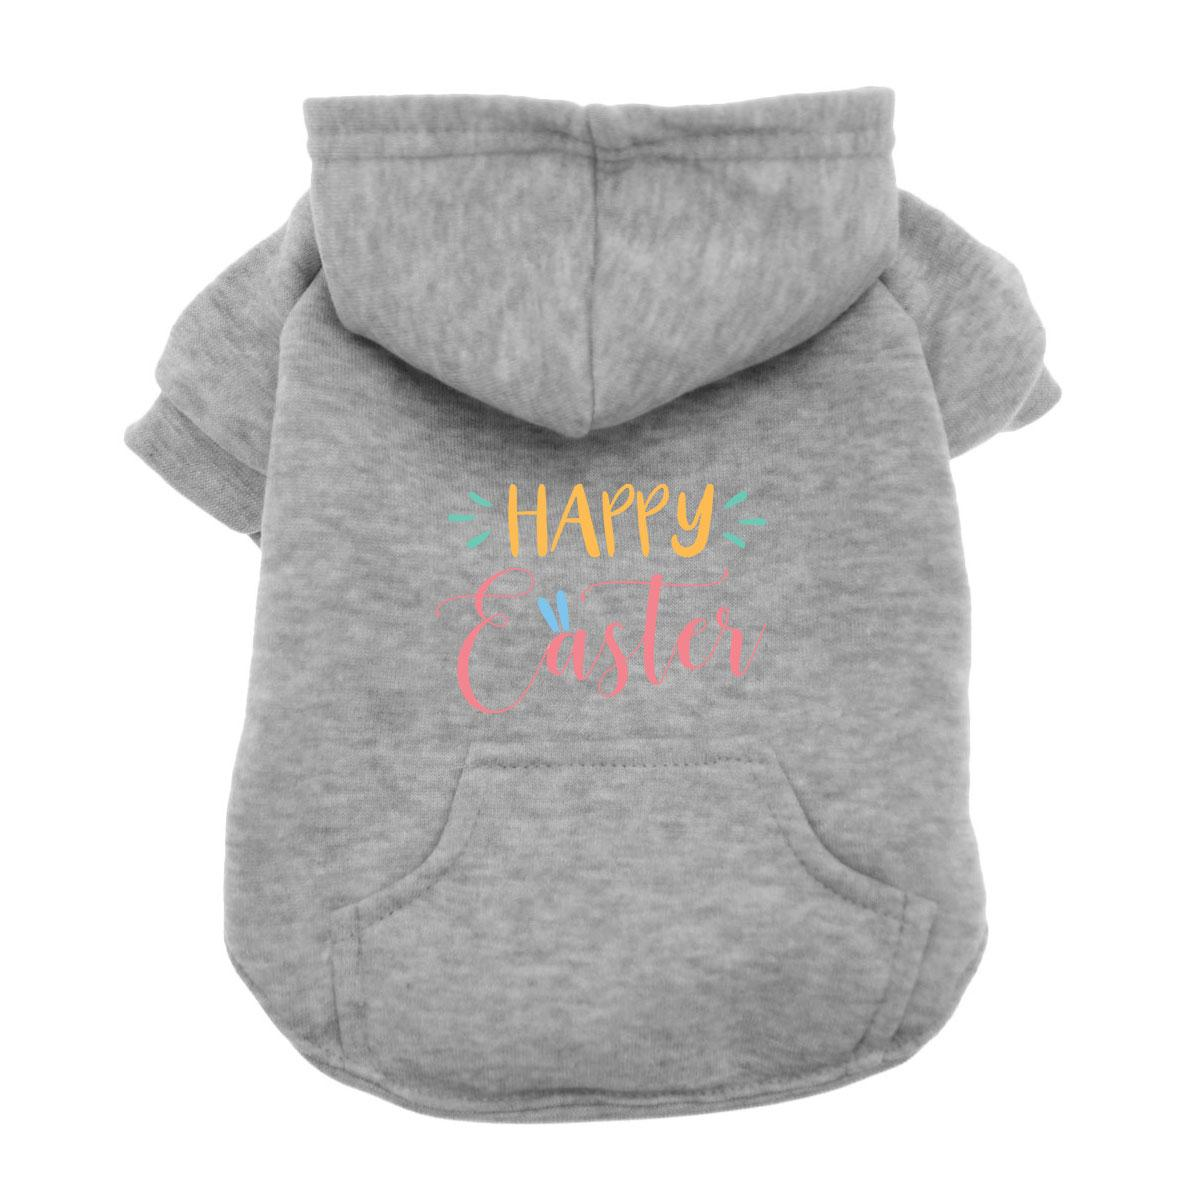 Happy Easter Dog Hoodie - Gray